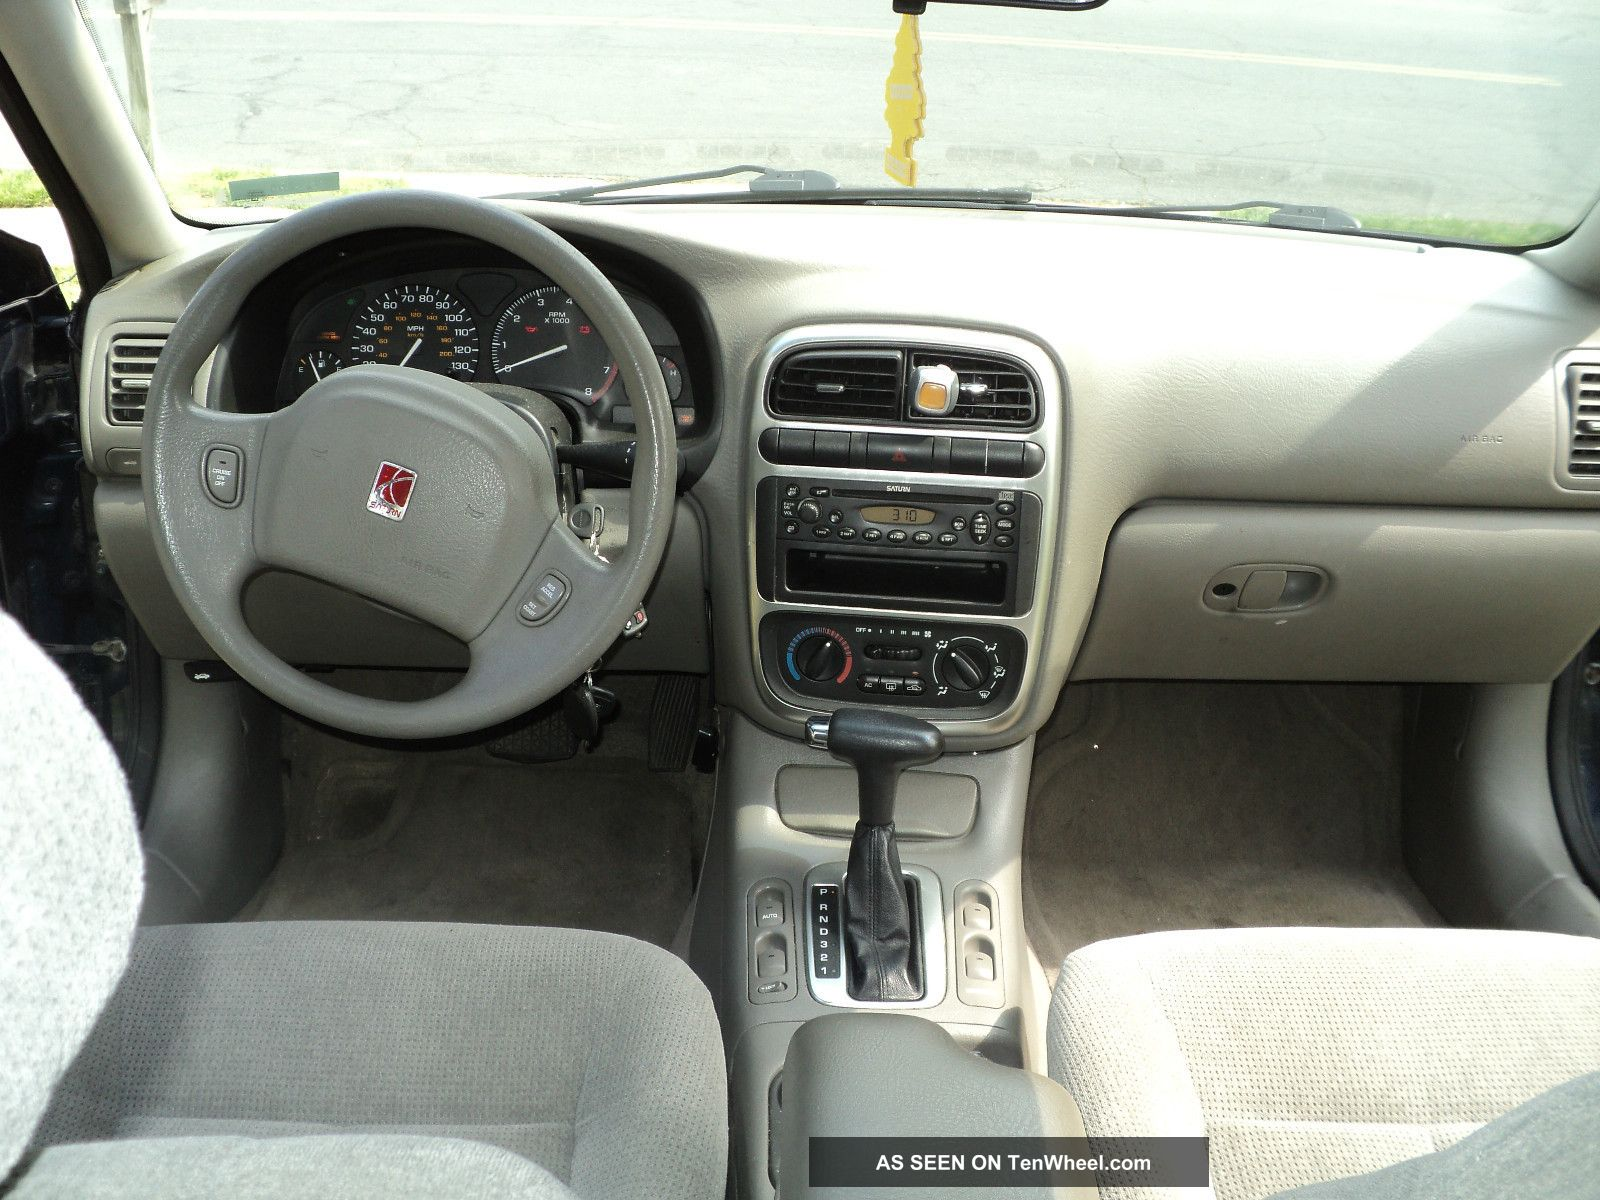 2001 saturn l200 interior image collections hd cars wallpaper 2001 saturn l200 interior images hd cars wallpaper 2001 saturn l200 modified choice image hd cars vanachro Image collections